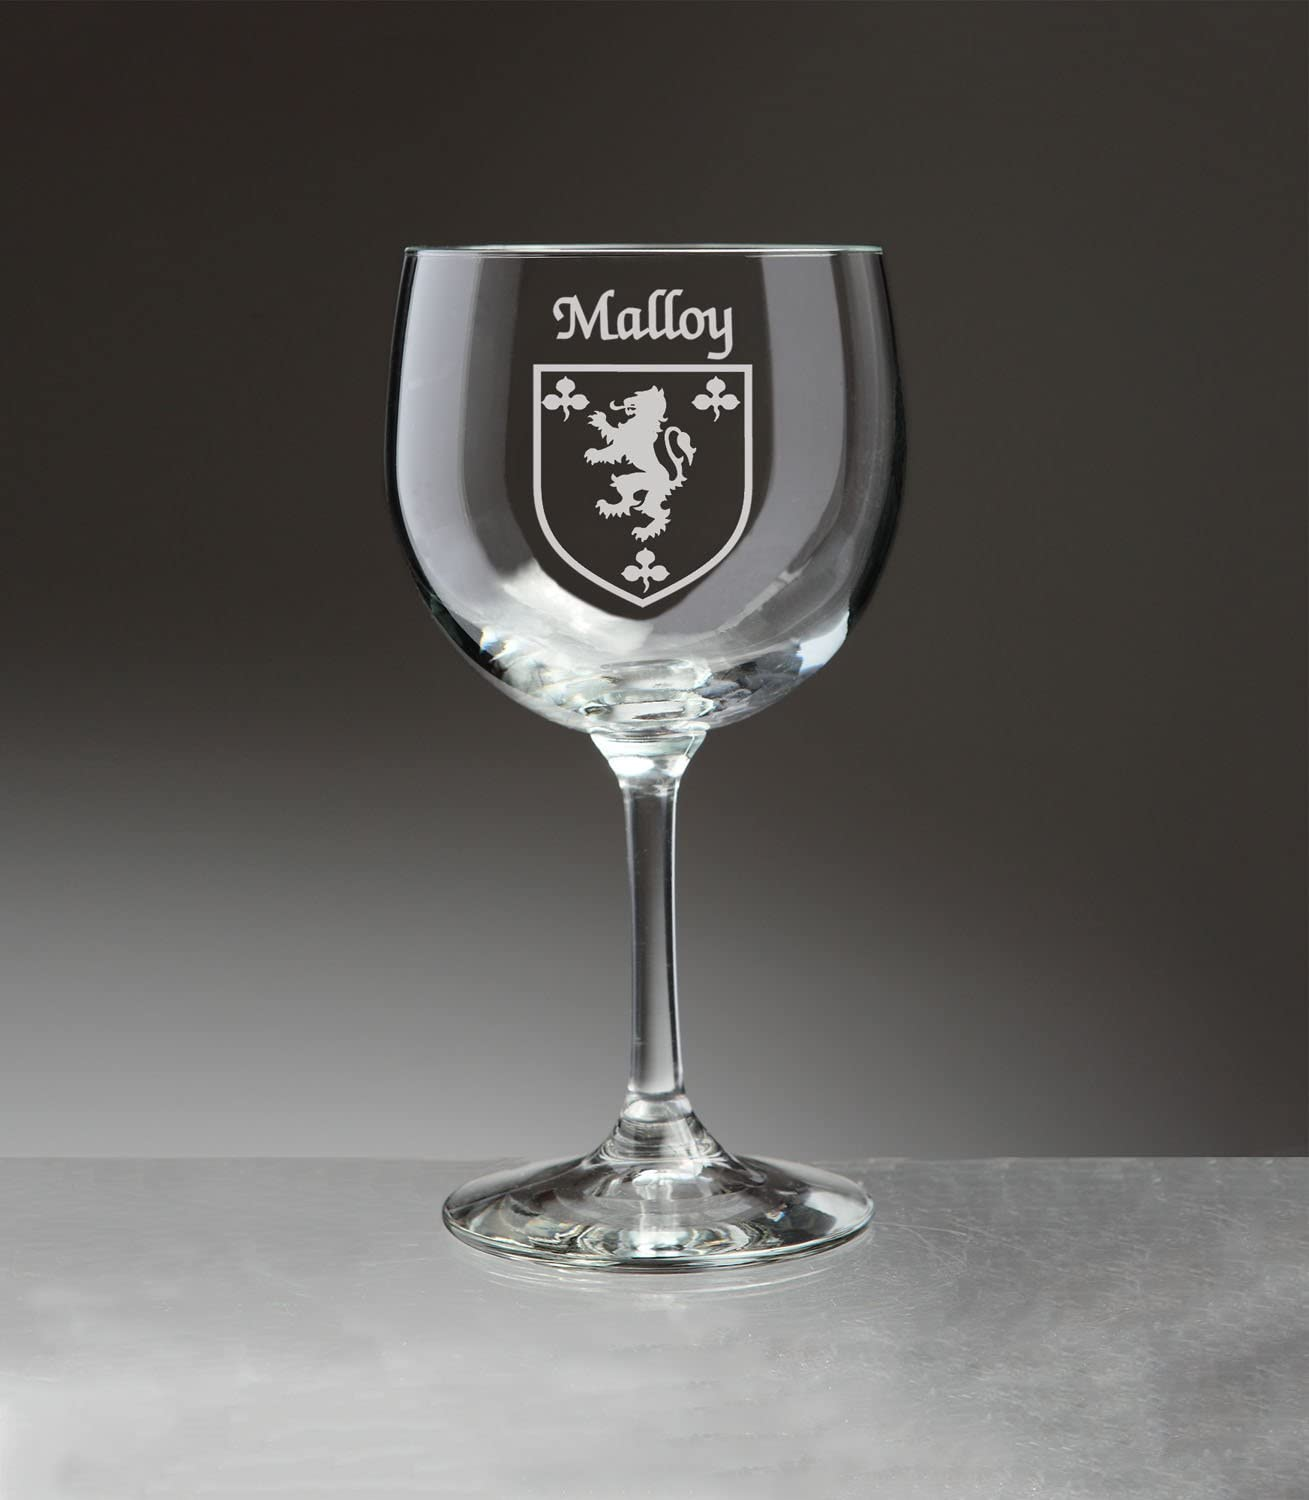 Regular store Malloy Irish Coat of Arms Red Wine Glasses Sand 4 Etch Set - Raleigh Mall